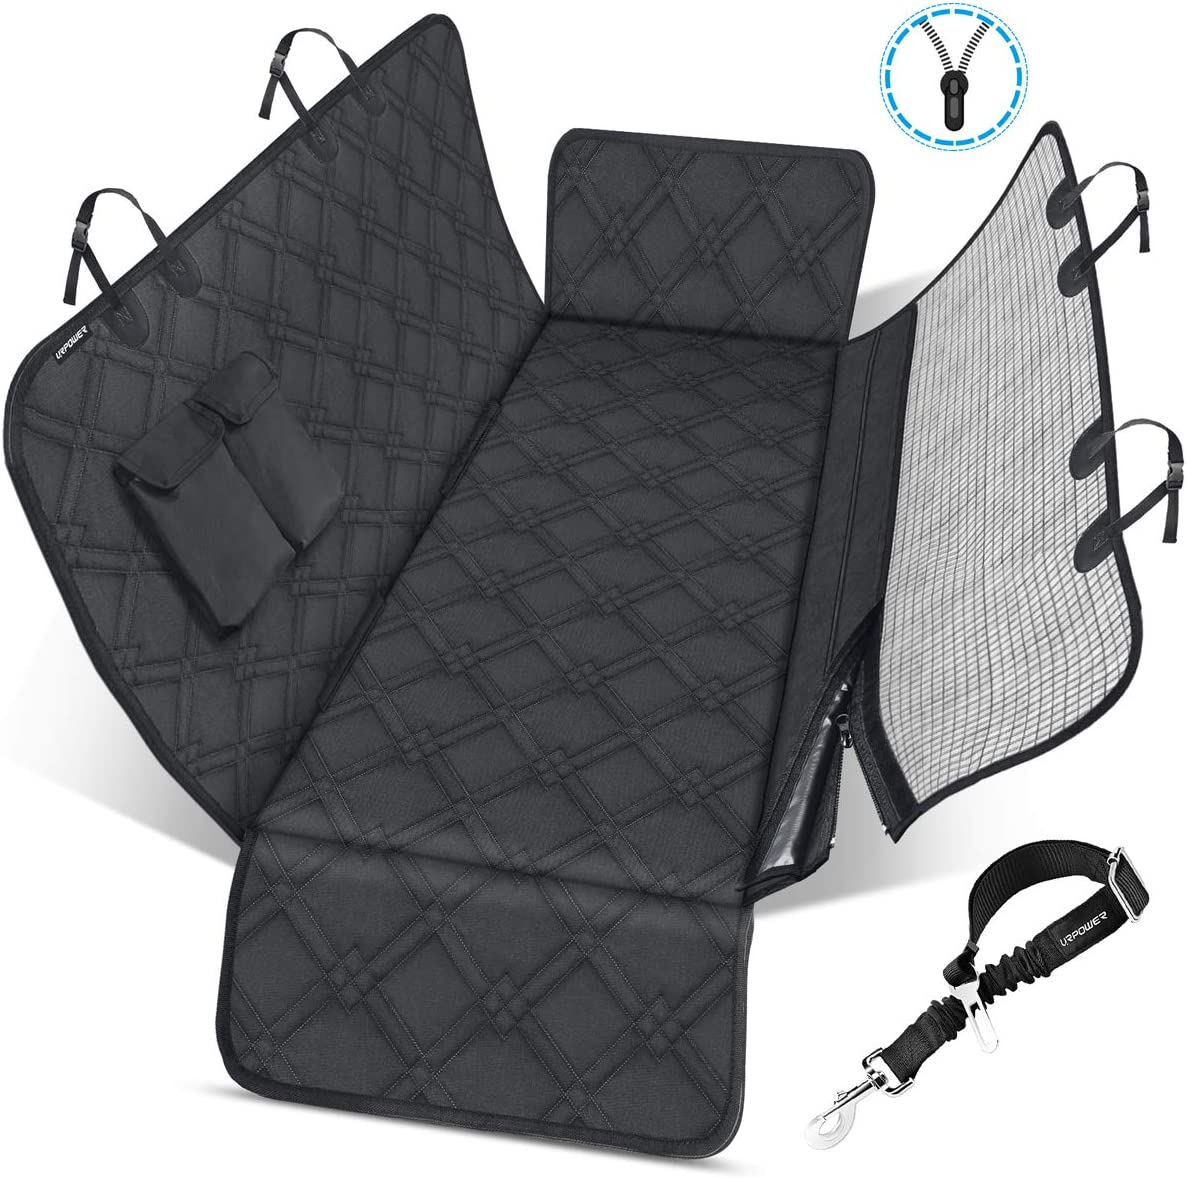 Headrest Pet Dog Mesh Guard Barrier Divider MREQLBL+HMSH5828 Mr E Saver/© Deluxe Quilted Heavy Duty Boot Protector